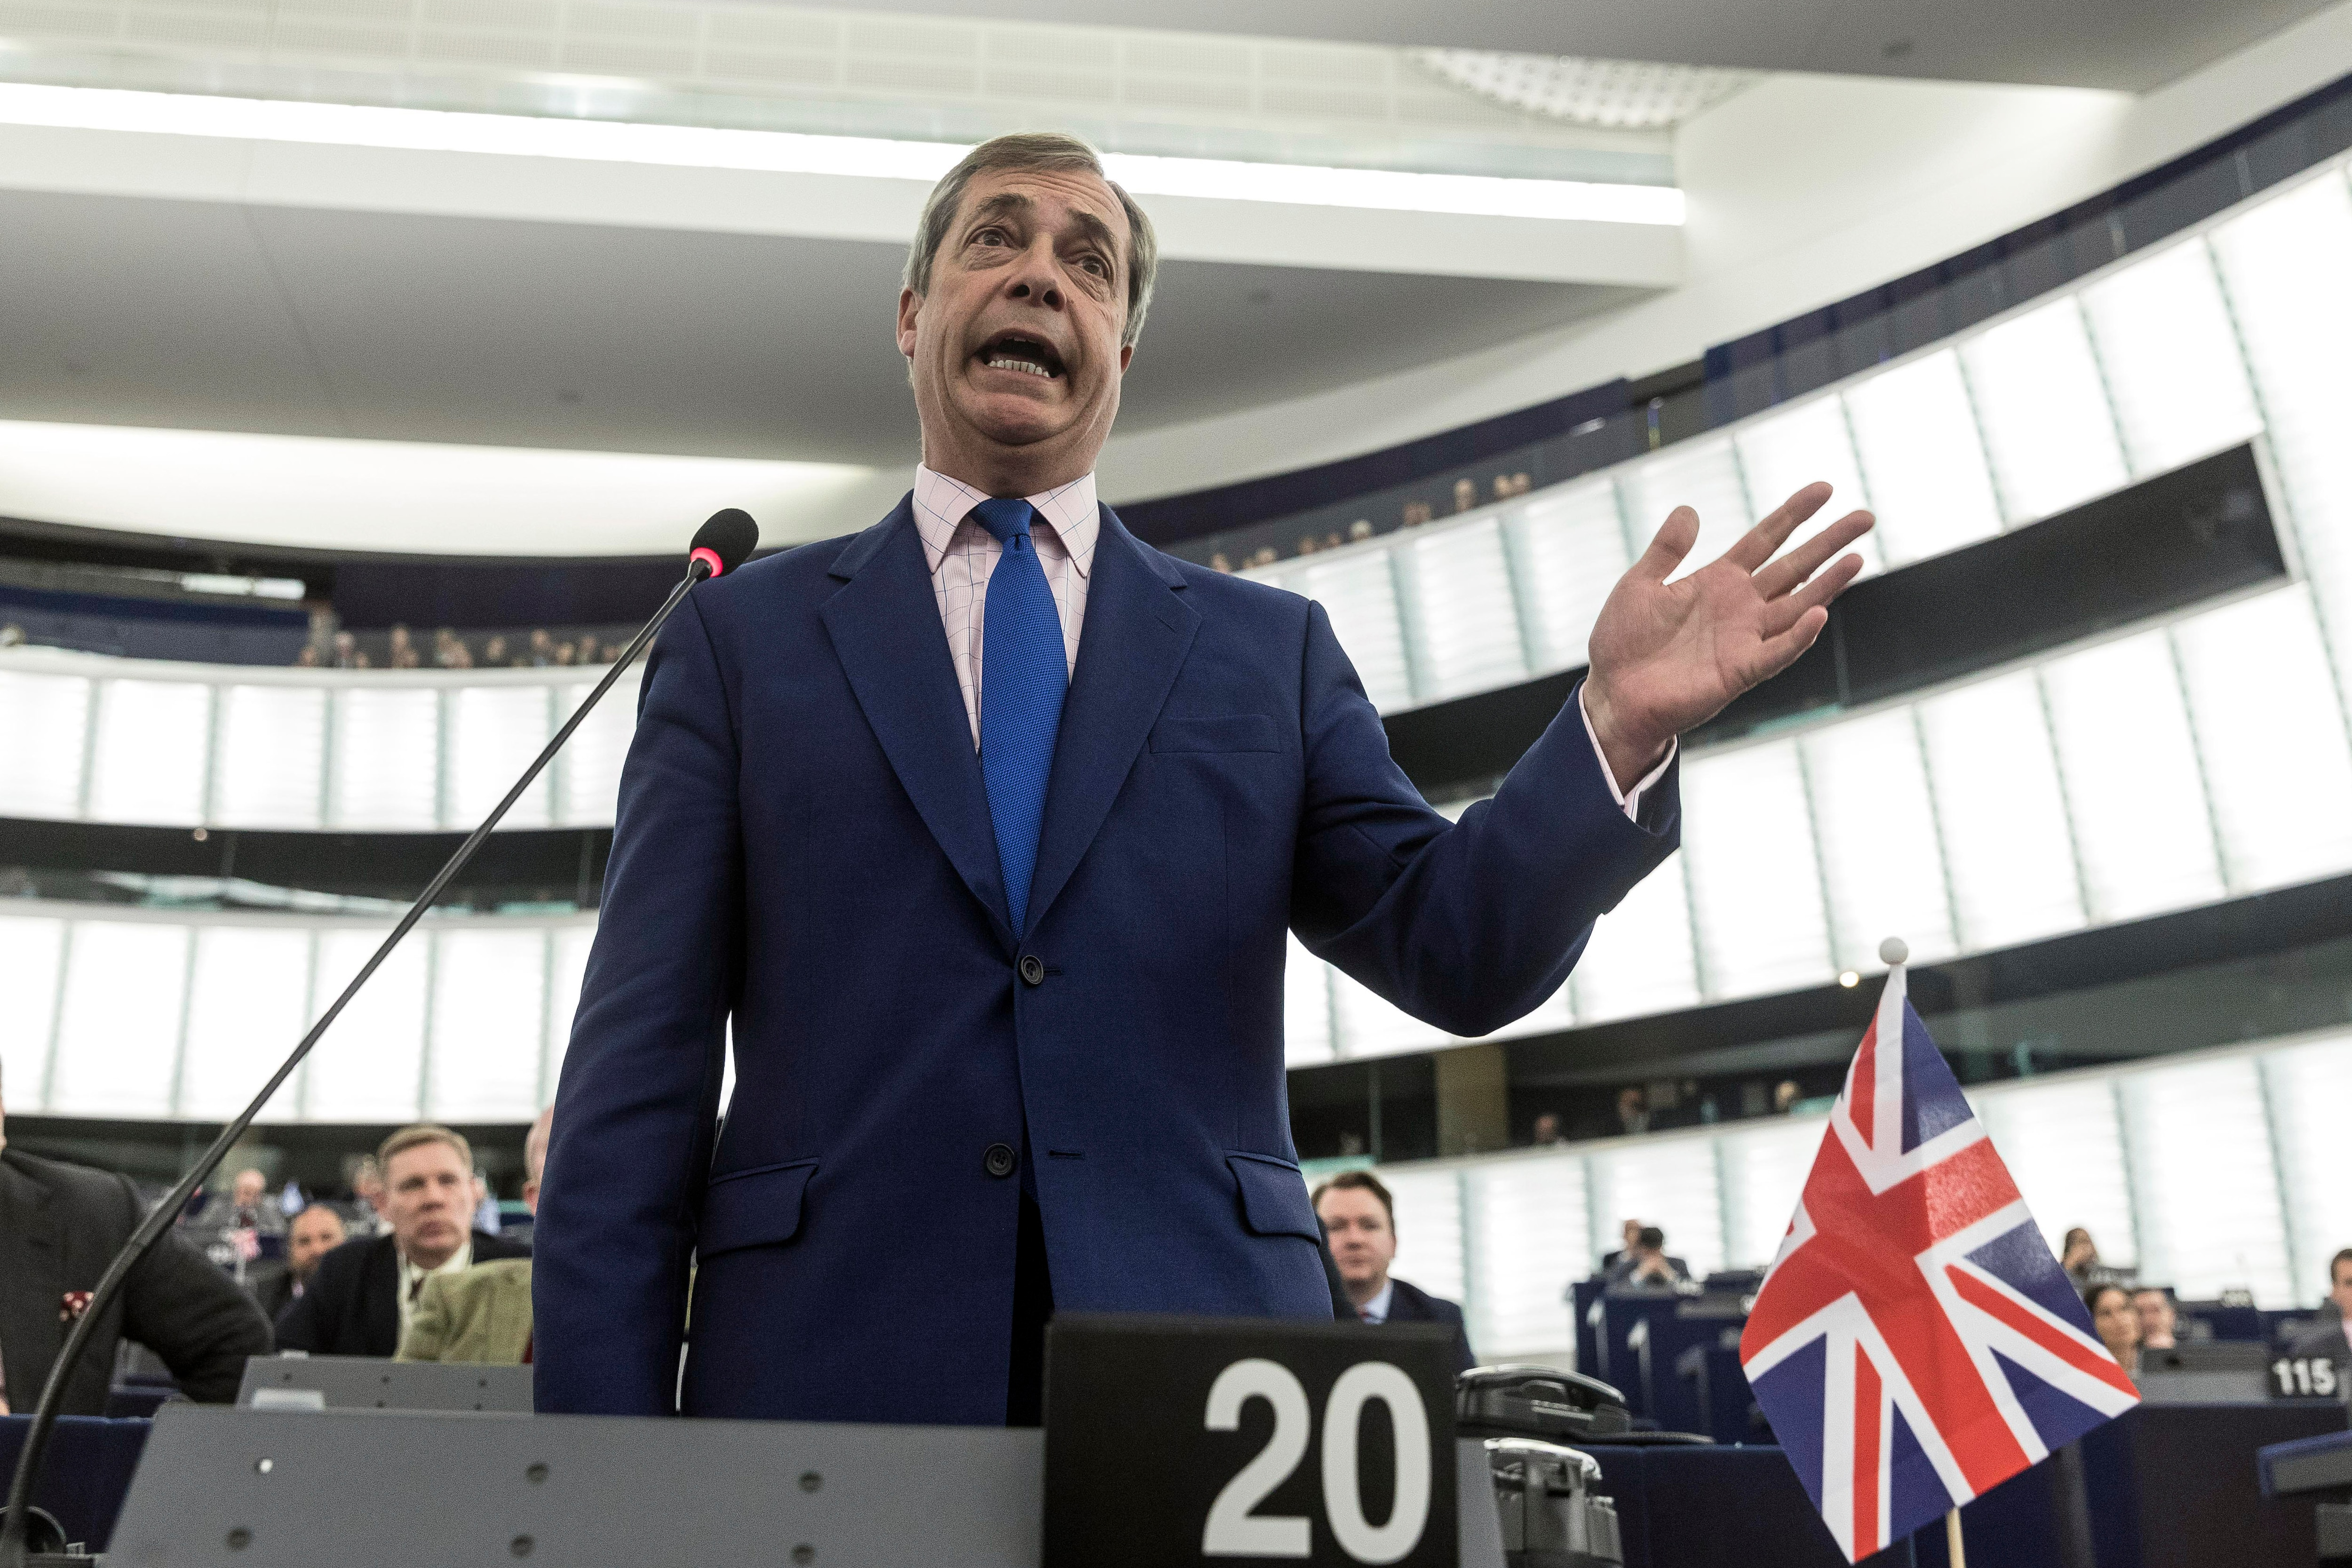 UK politician Nigel Farage will lead a march from Sunderland to London, to protest in favour of exiting the European Union.